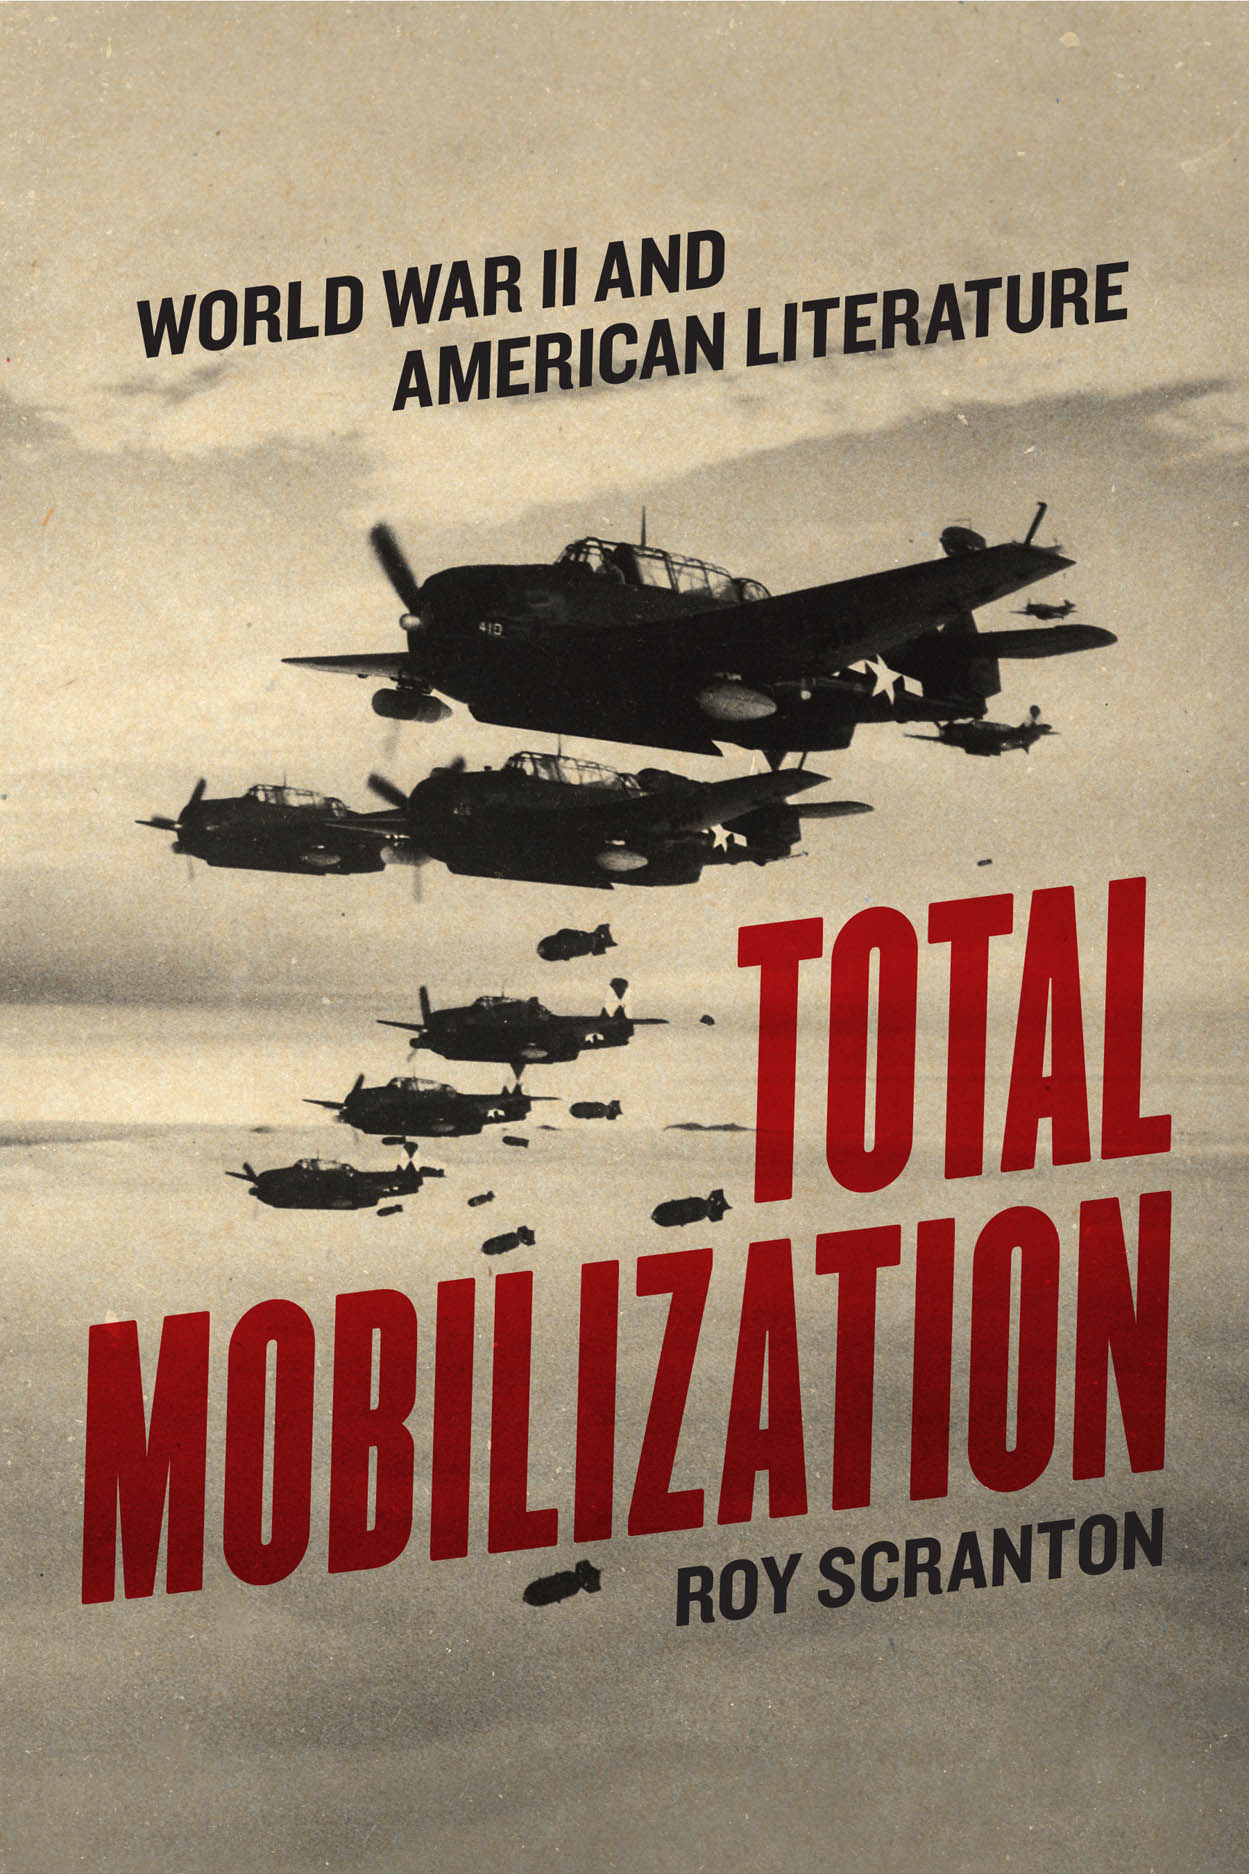 Total Mobilization: World War II and American Literature